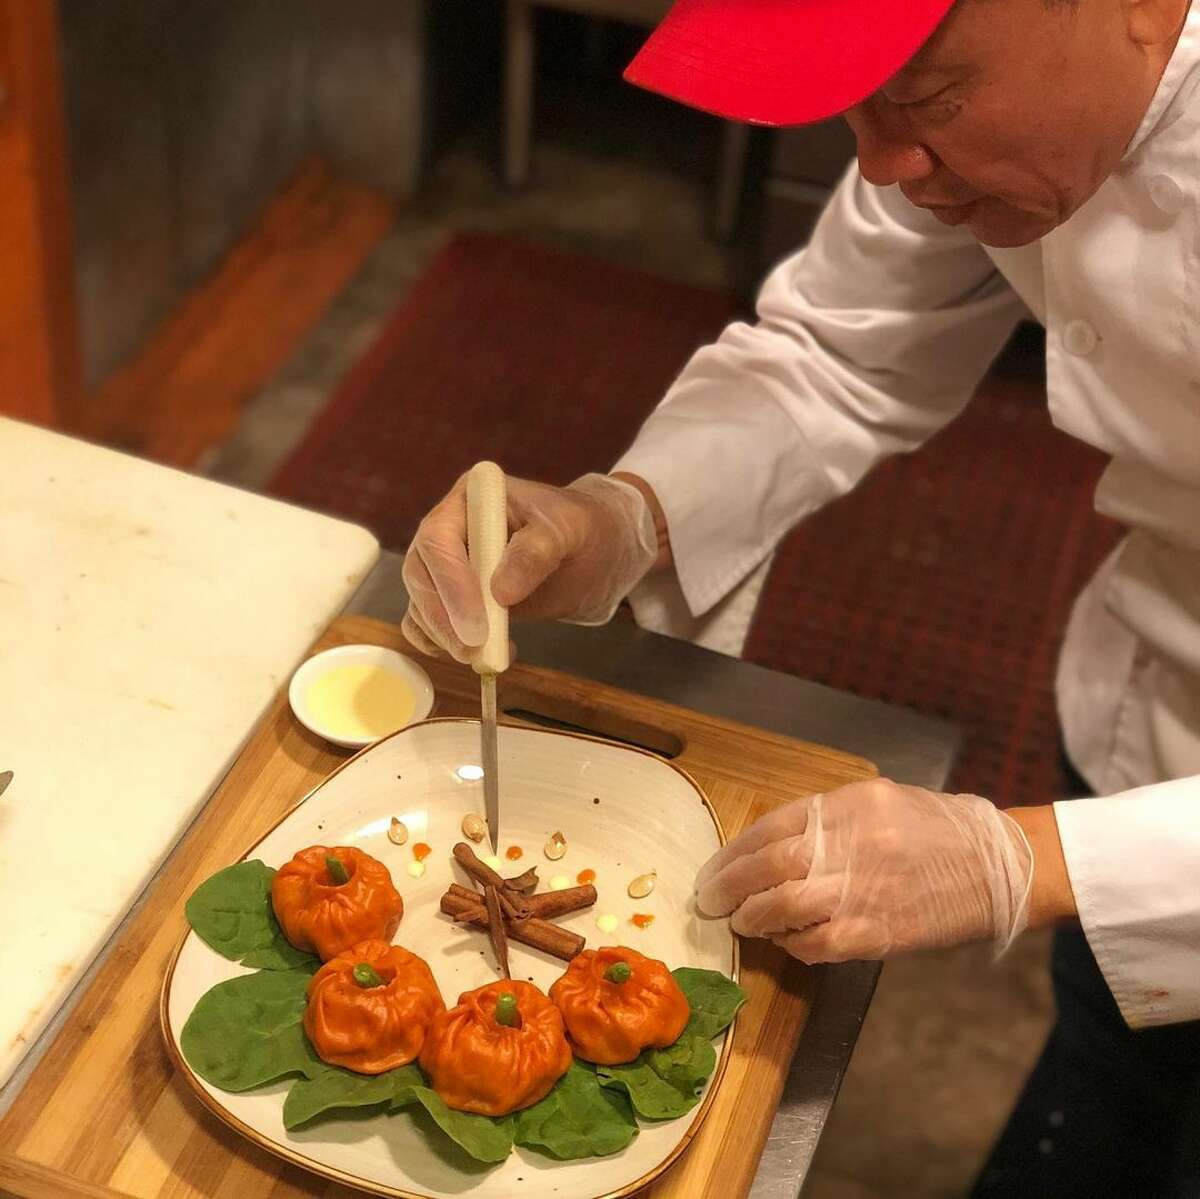 """At Catskill Momos in Delhi, chef """"Jimmy"""" Wangdak Tagsar takes advantage of local farms and in-season produce to tailor his Tibetan momos for upstate customers. In the fall he makes pumpkin momos;in the spring he often makes a special dumpling with ramps."""